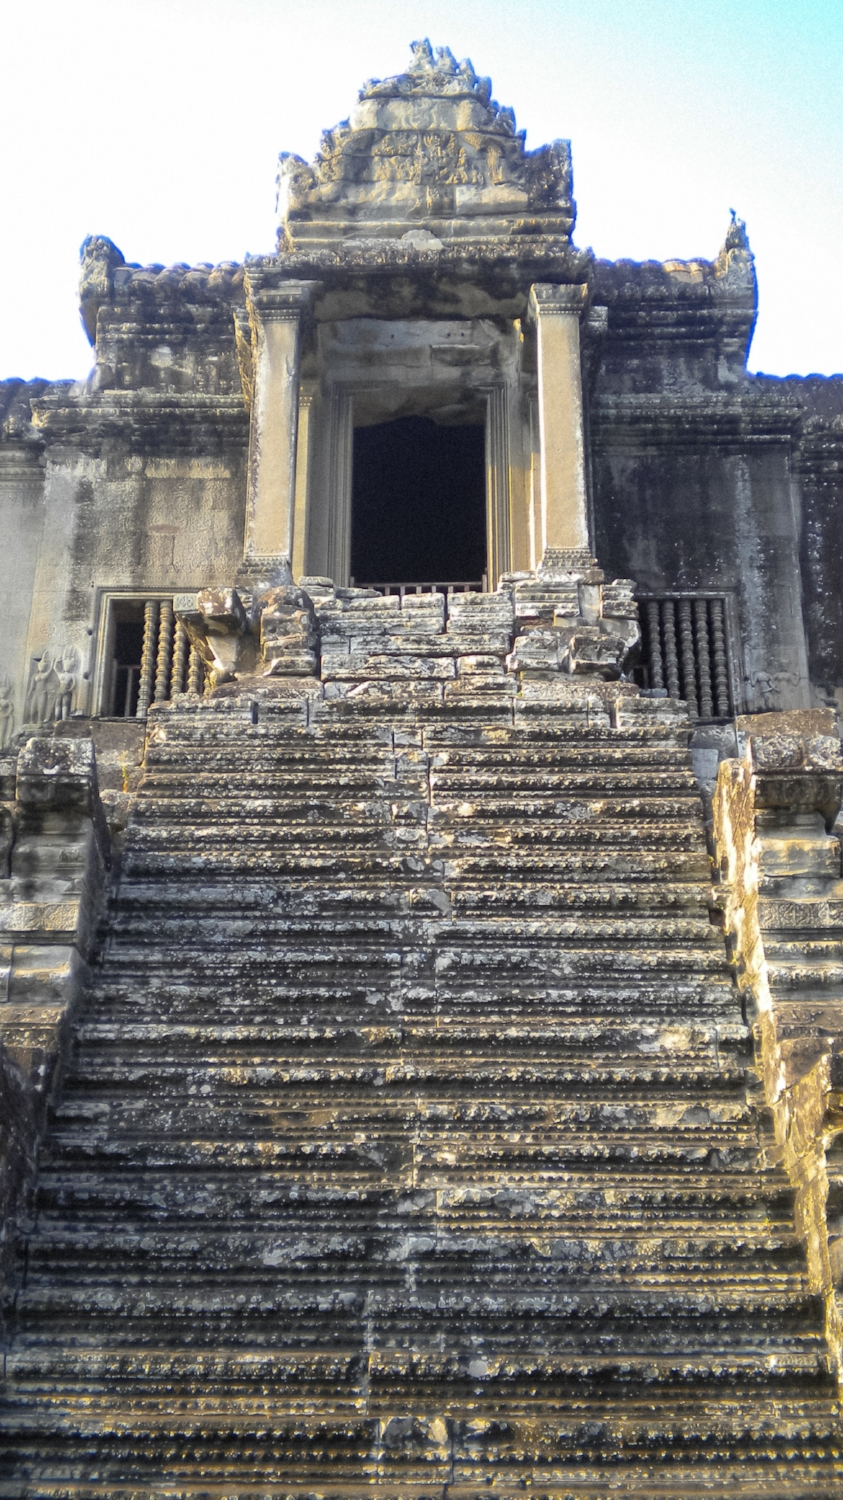 curio.trips.cambodia.siem.reap.angkor.wat.temple.steps1.jpg